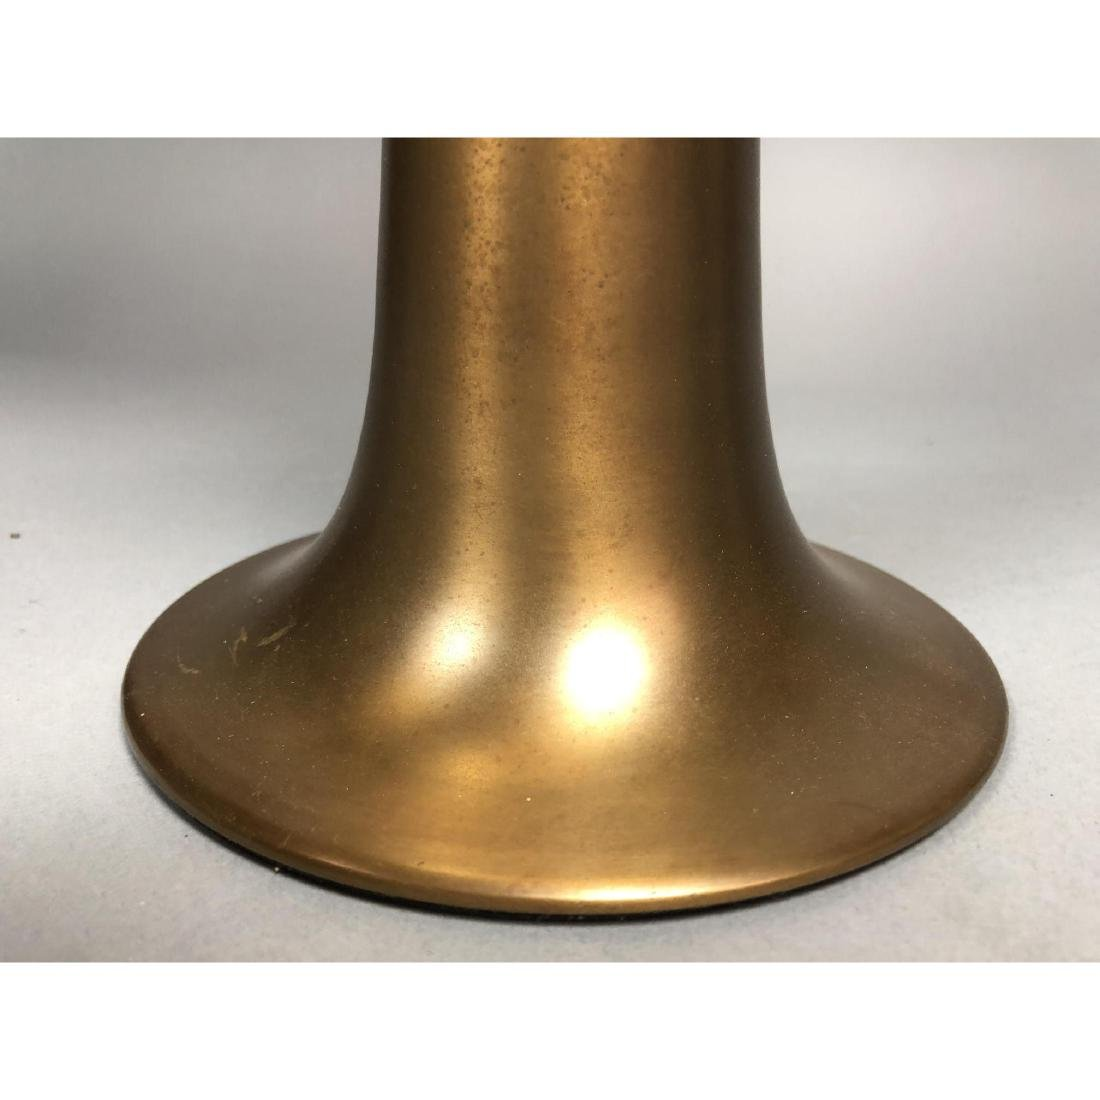 Stylish Modern Brass & Metal Industrial Candle St - 3